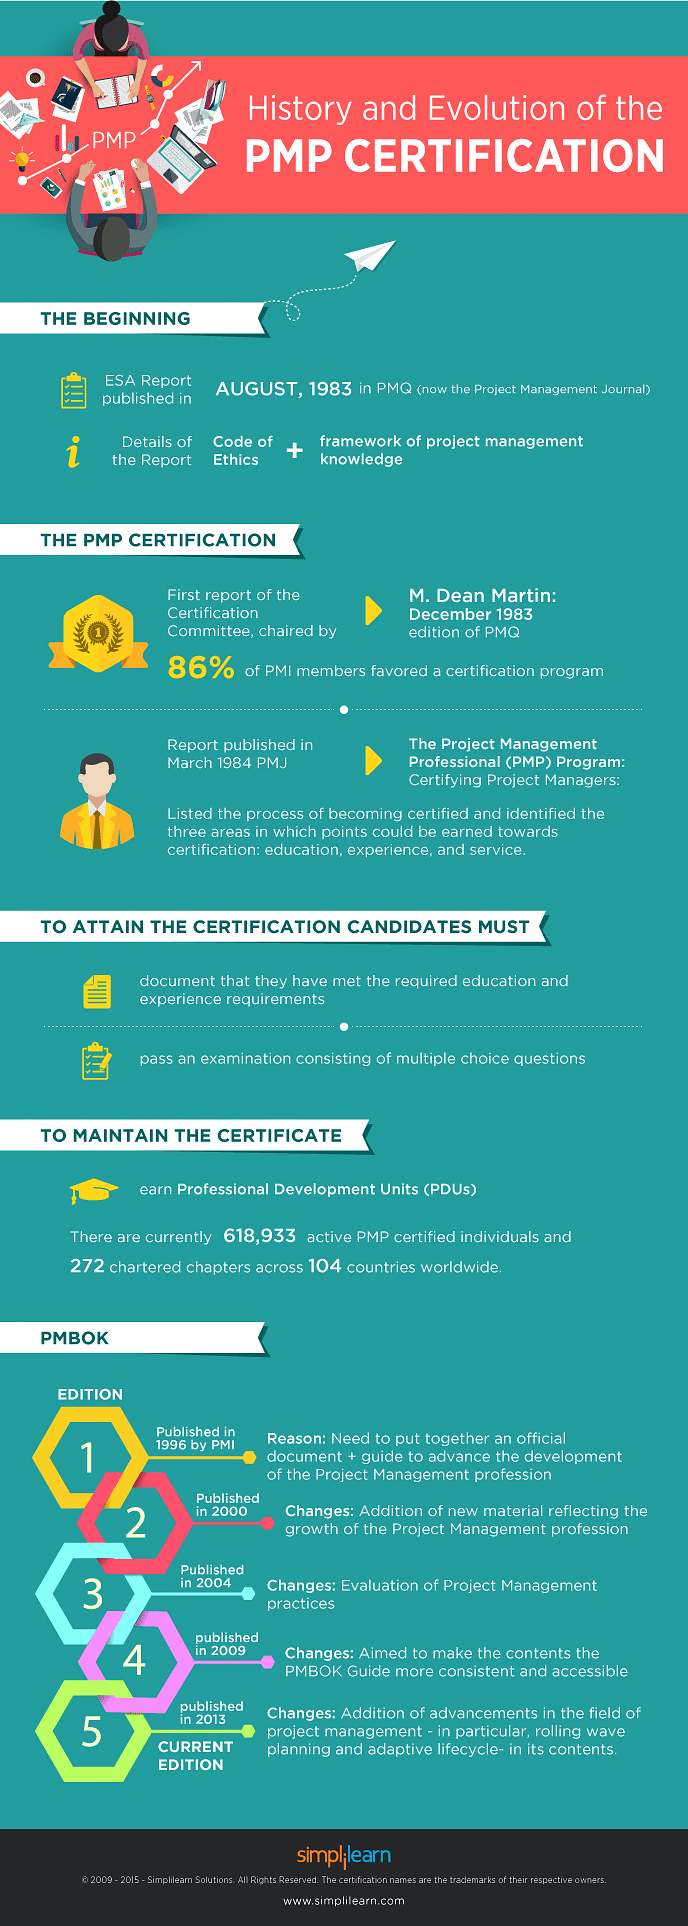 History and evolution of the PMP Certification